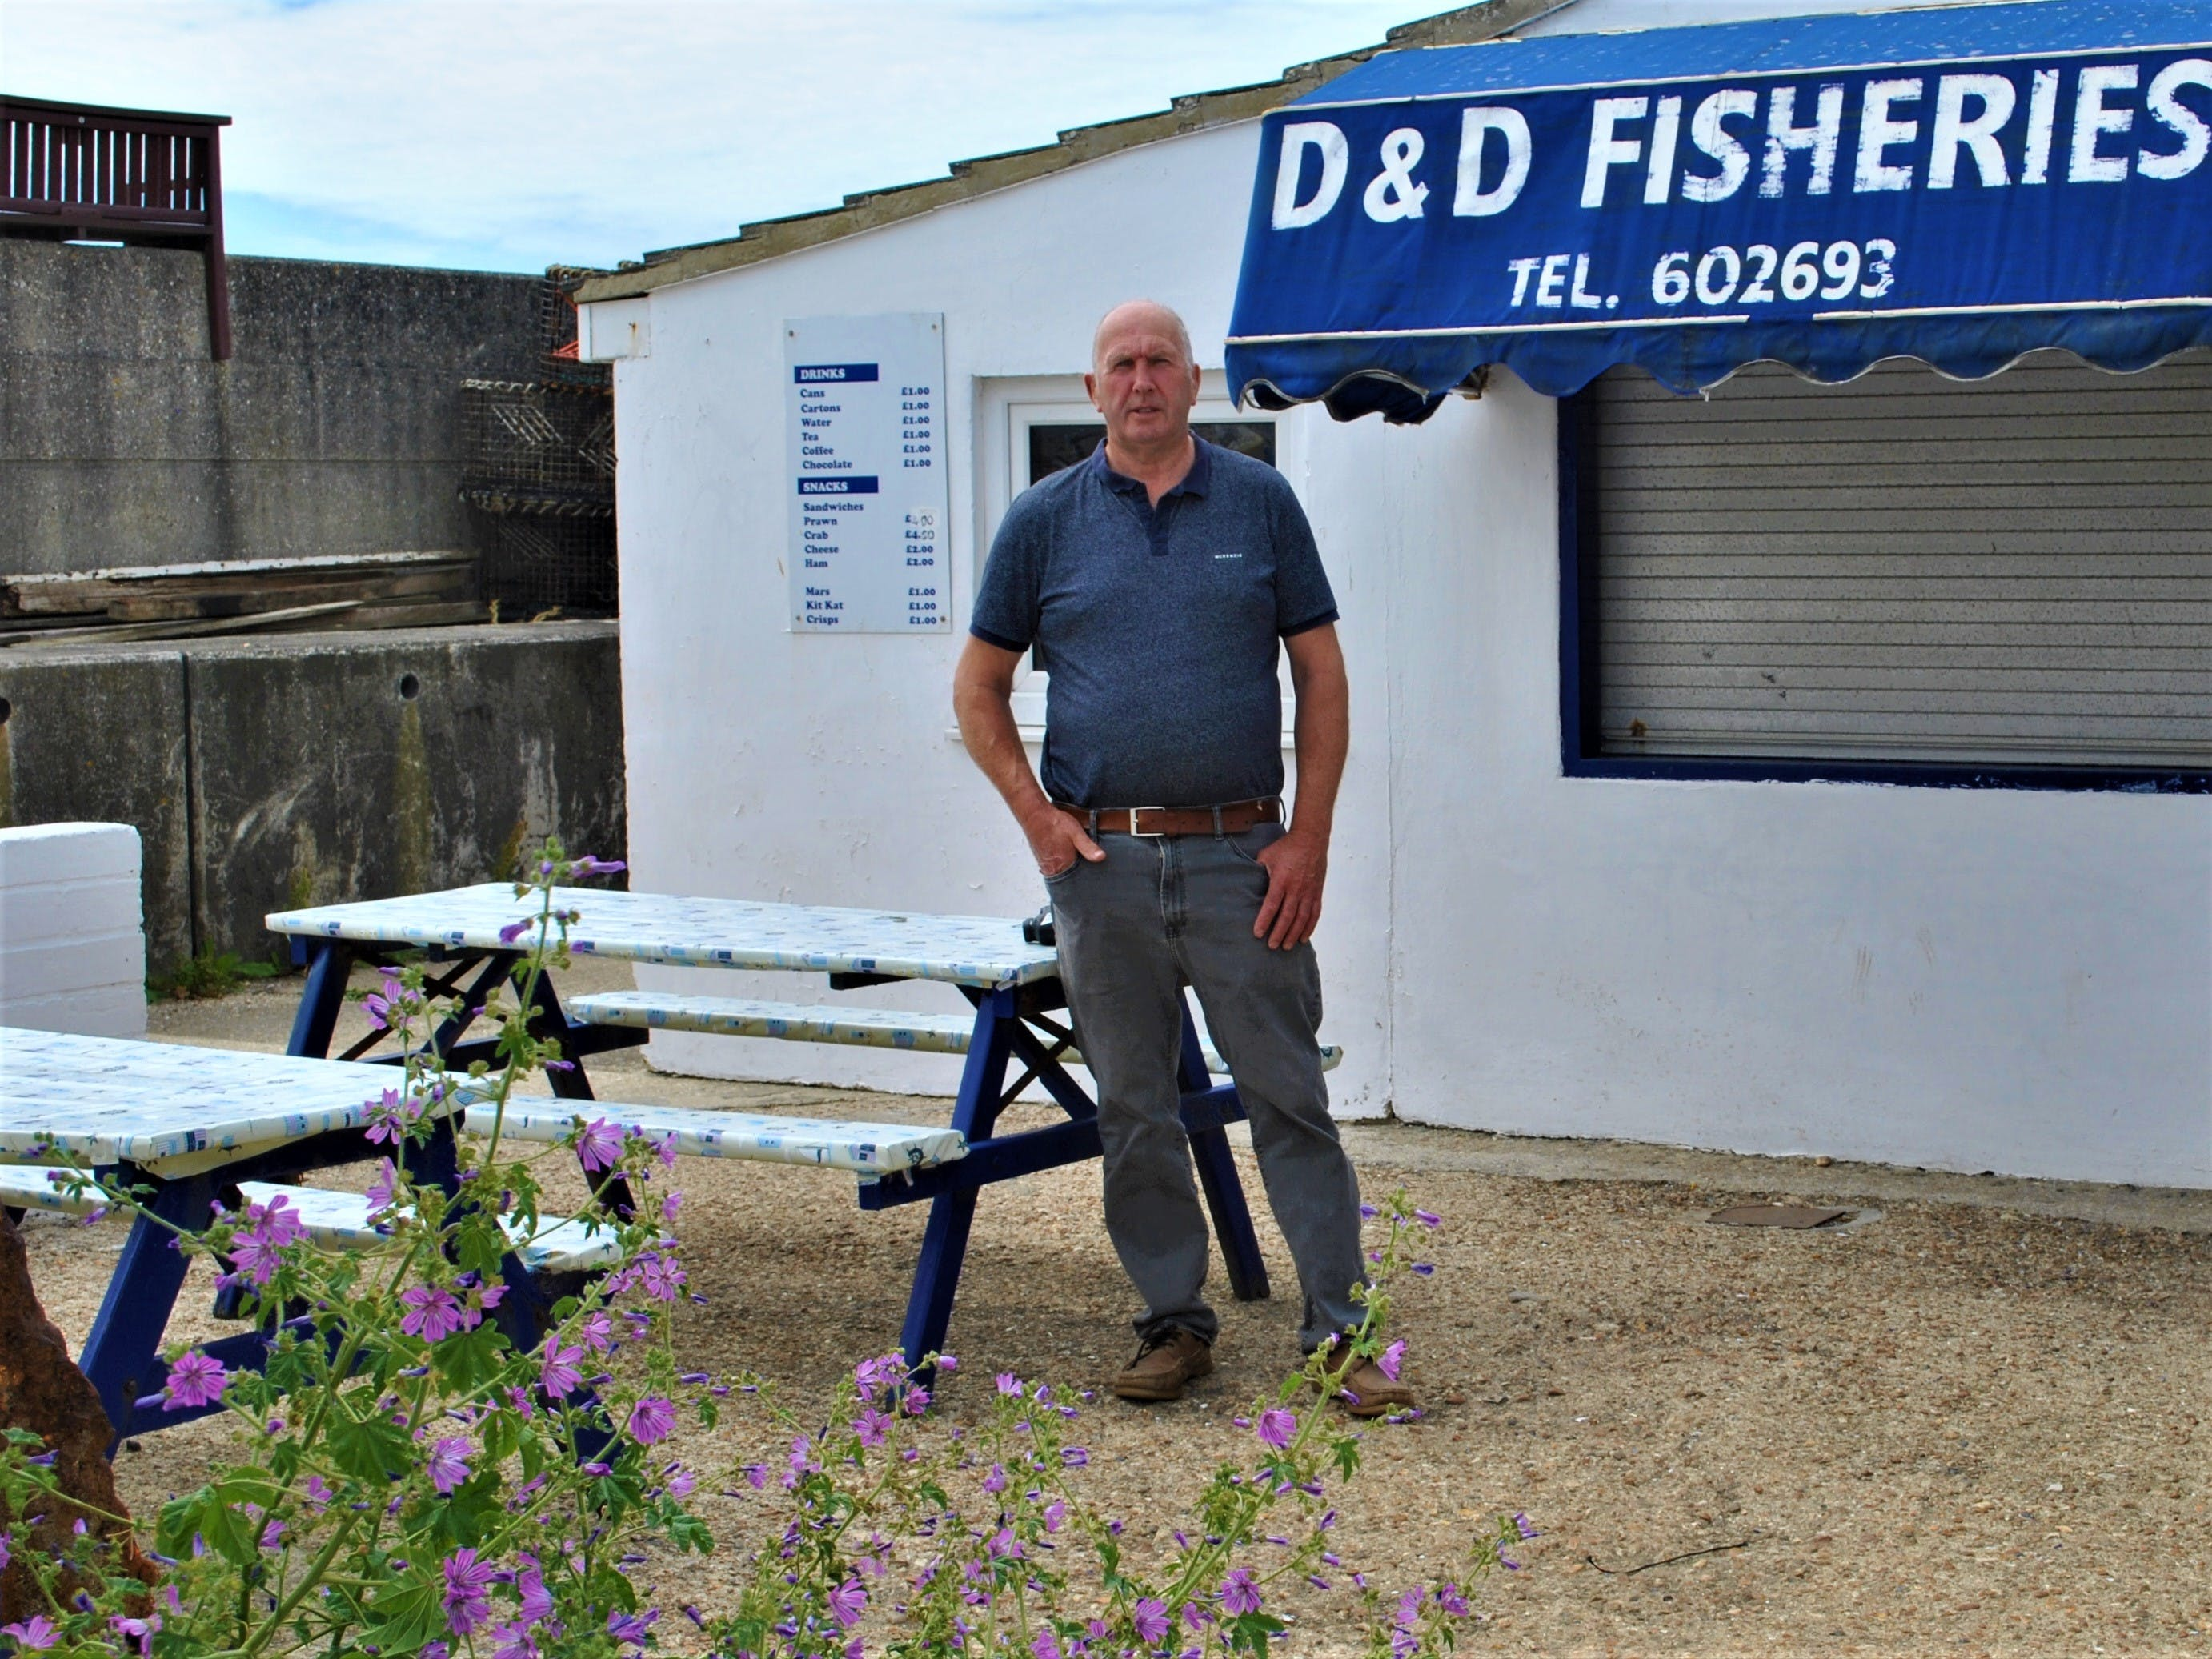 Denny Arnell, fisherman and owner of D&D Fisheries